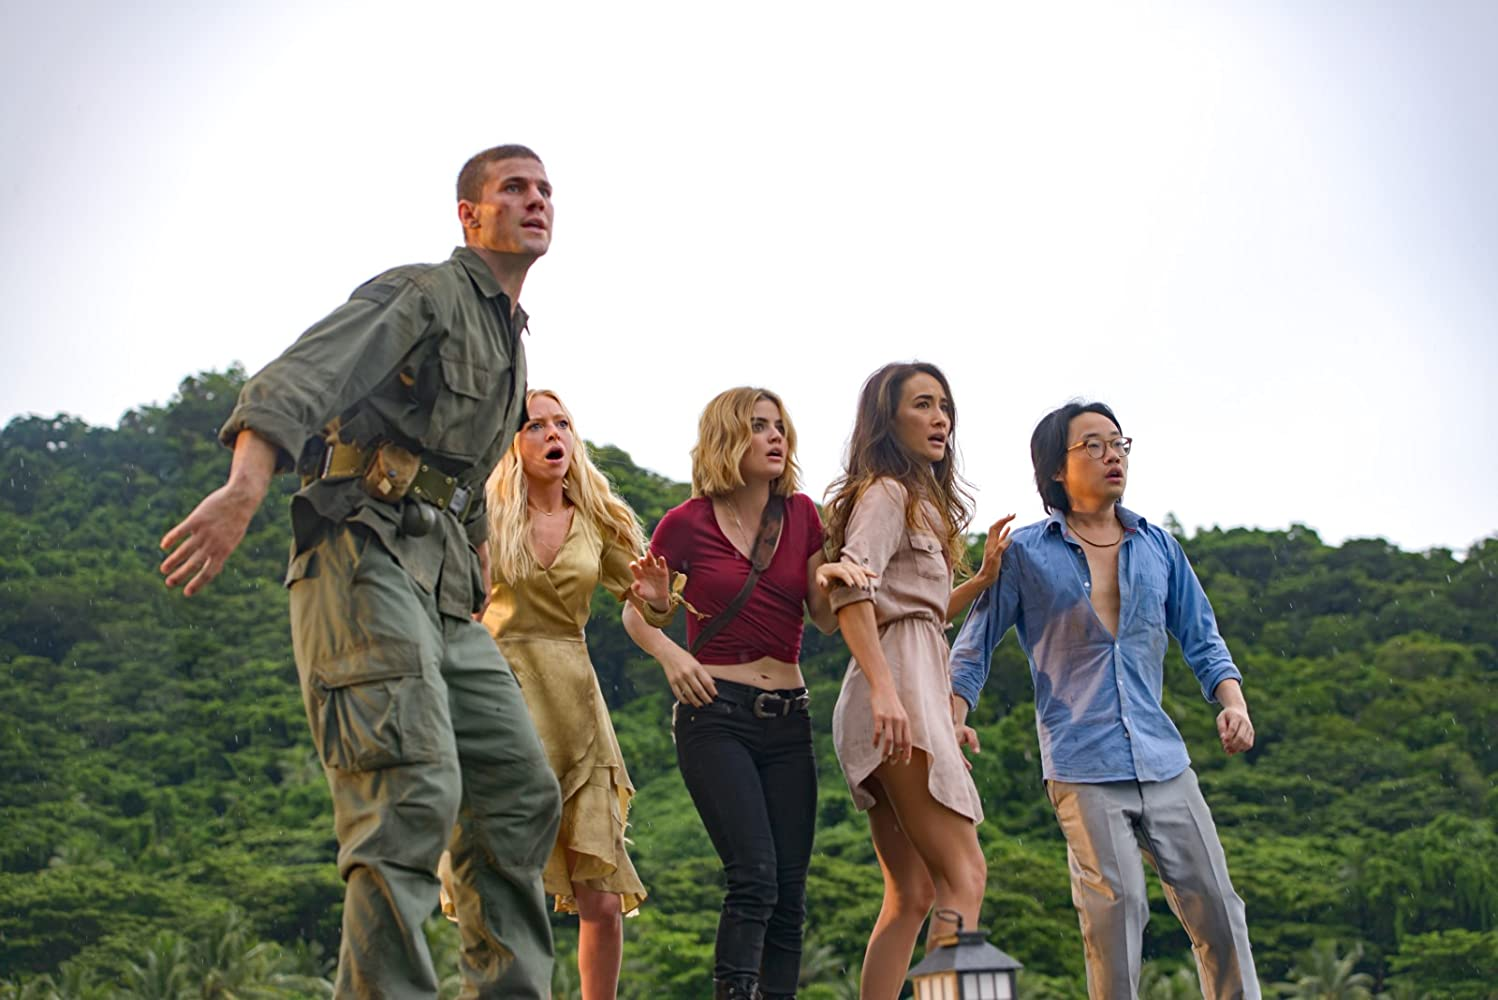 Portia Doubleday, Maggie Q, Lucy Hale, Austin Stowell, and Jimmy O. Yang in Fantasy Island (2020)